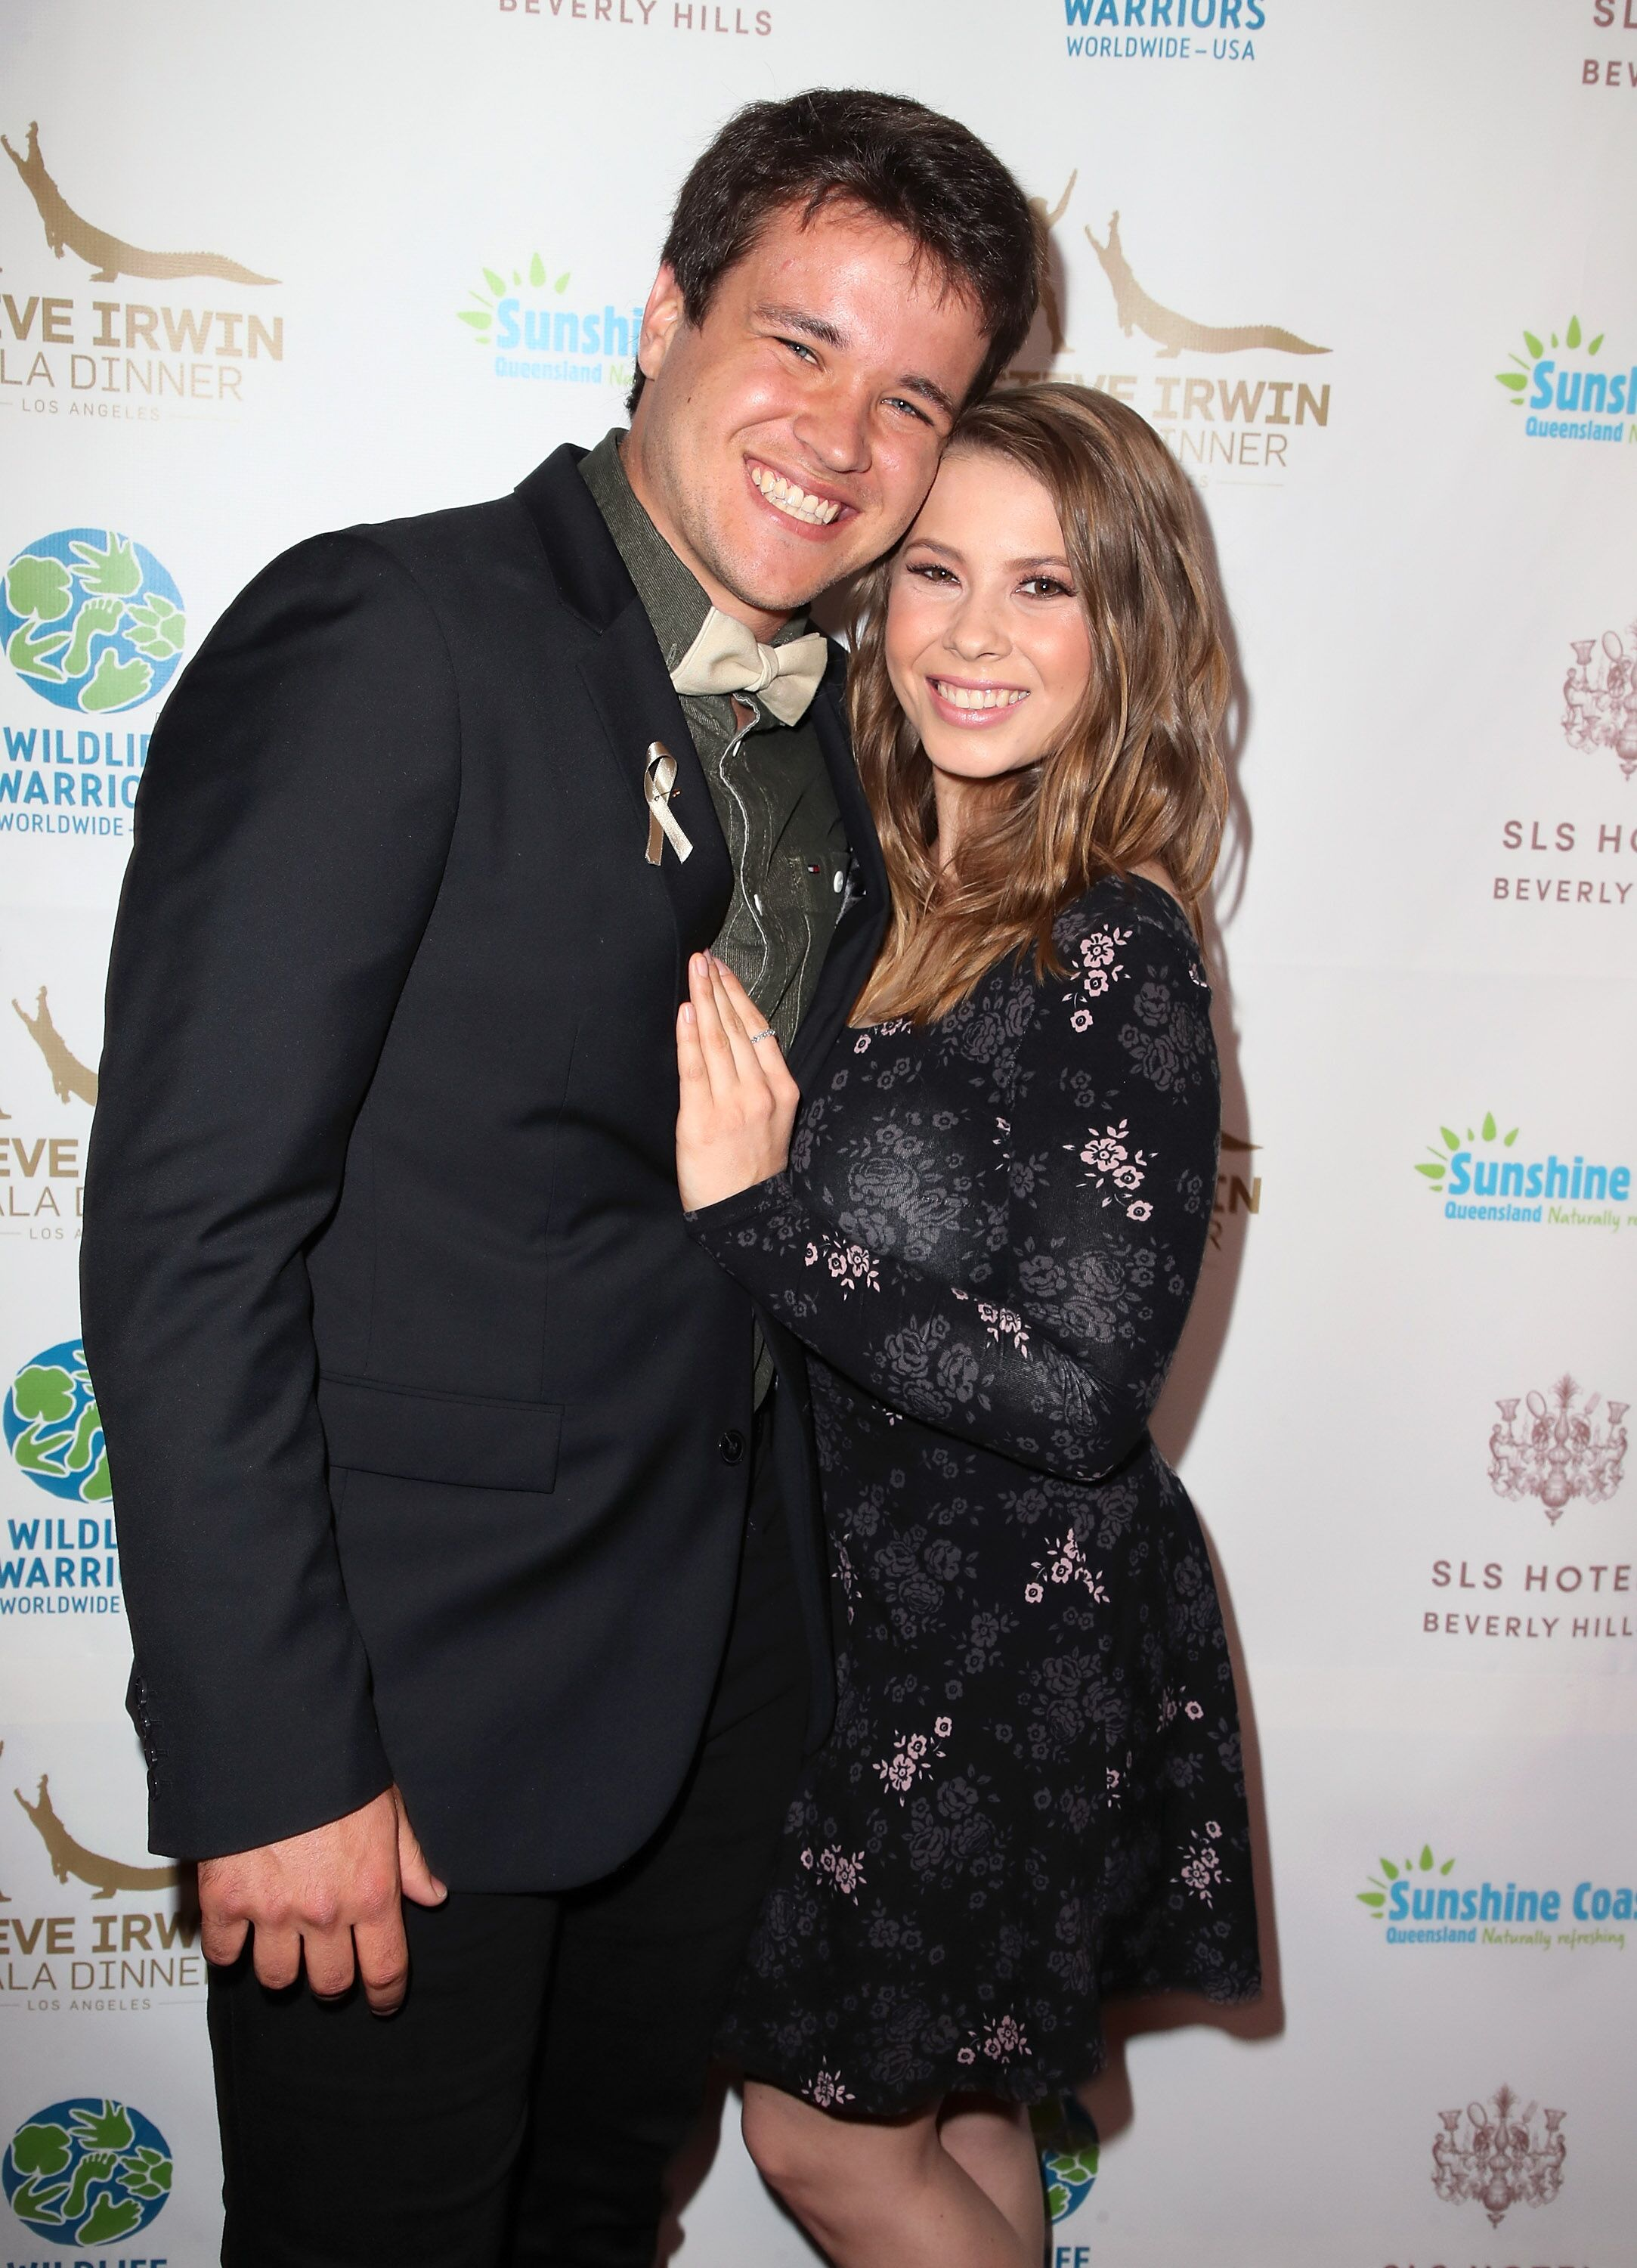 Chandler Powell and Bindi Irwin at the Steve Irwin Gala Dinner in 2018, in Beverly Hills | Source: Getty Images